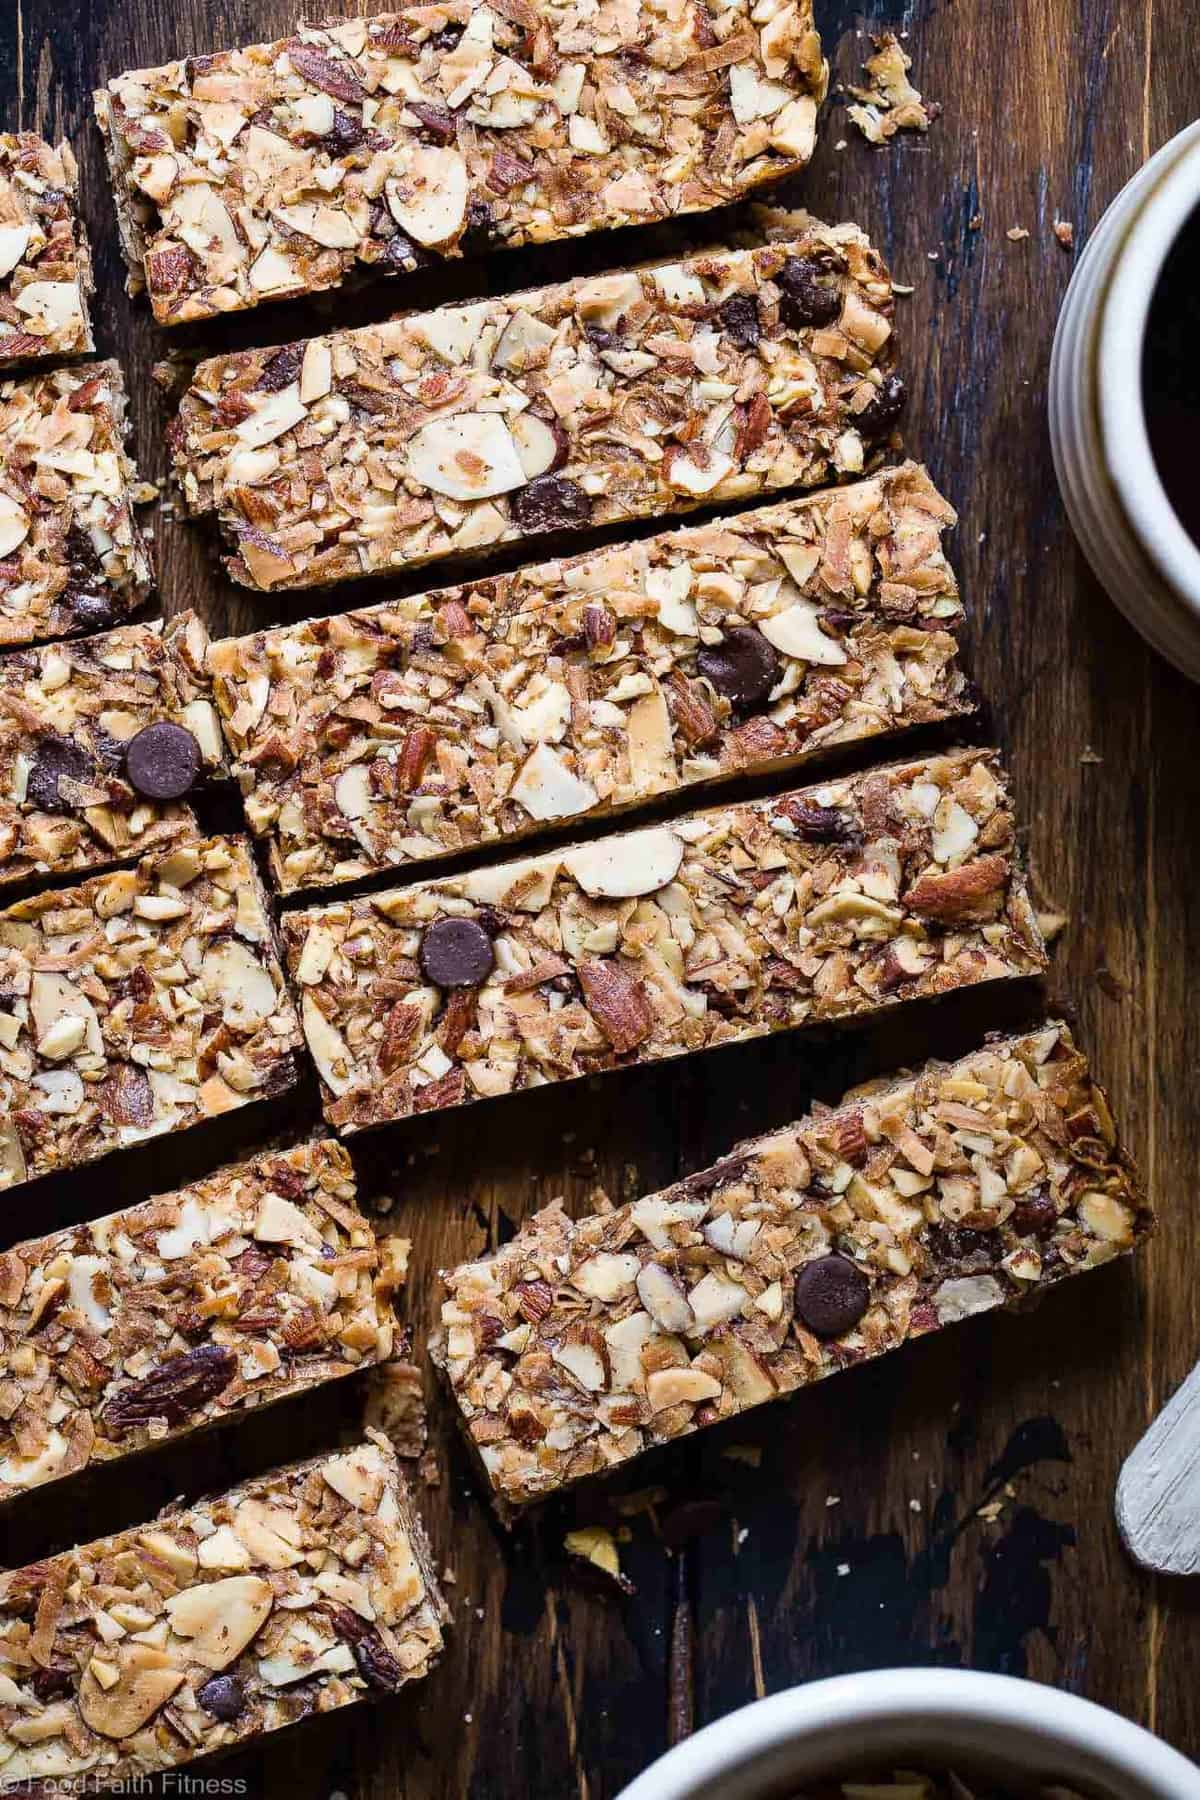 Keto Almond Joy Sugar Free Granola Bars - This low carb granola bars recipe is only 7 simple ingredients and tastes like an Almond Joy! Kids or adults will LOVE these and they're portable and freeze great too! | #Foodfaithfitness | #Keto #Glutenfree #Paleo #Dairyfree #Sugarfree